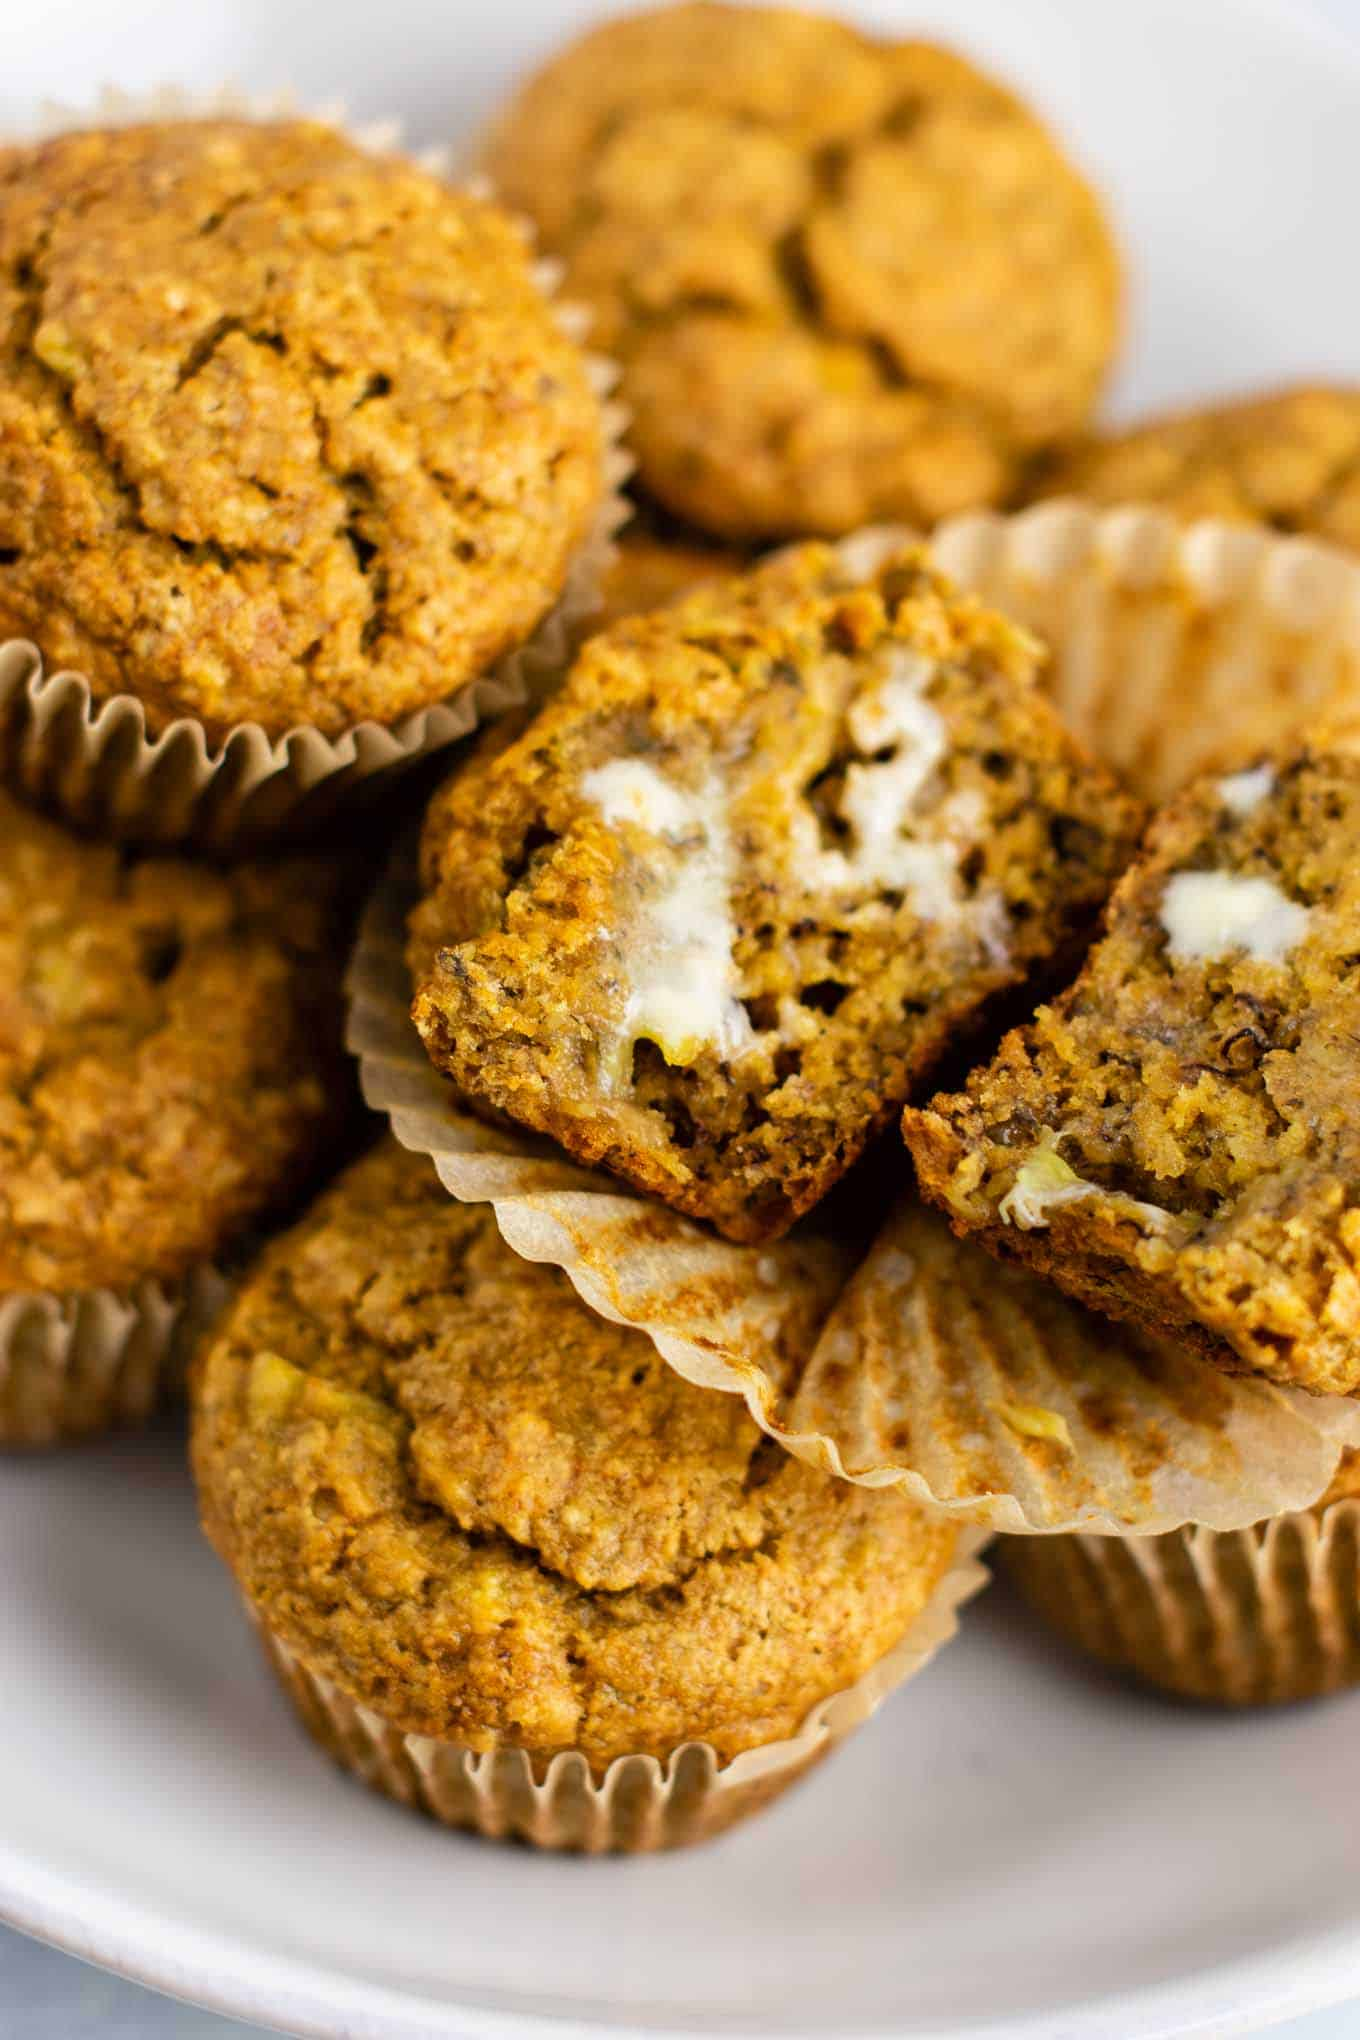 vegan butter on vegan muffins